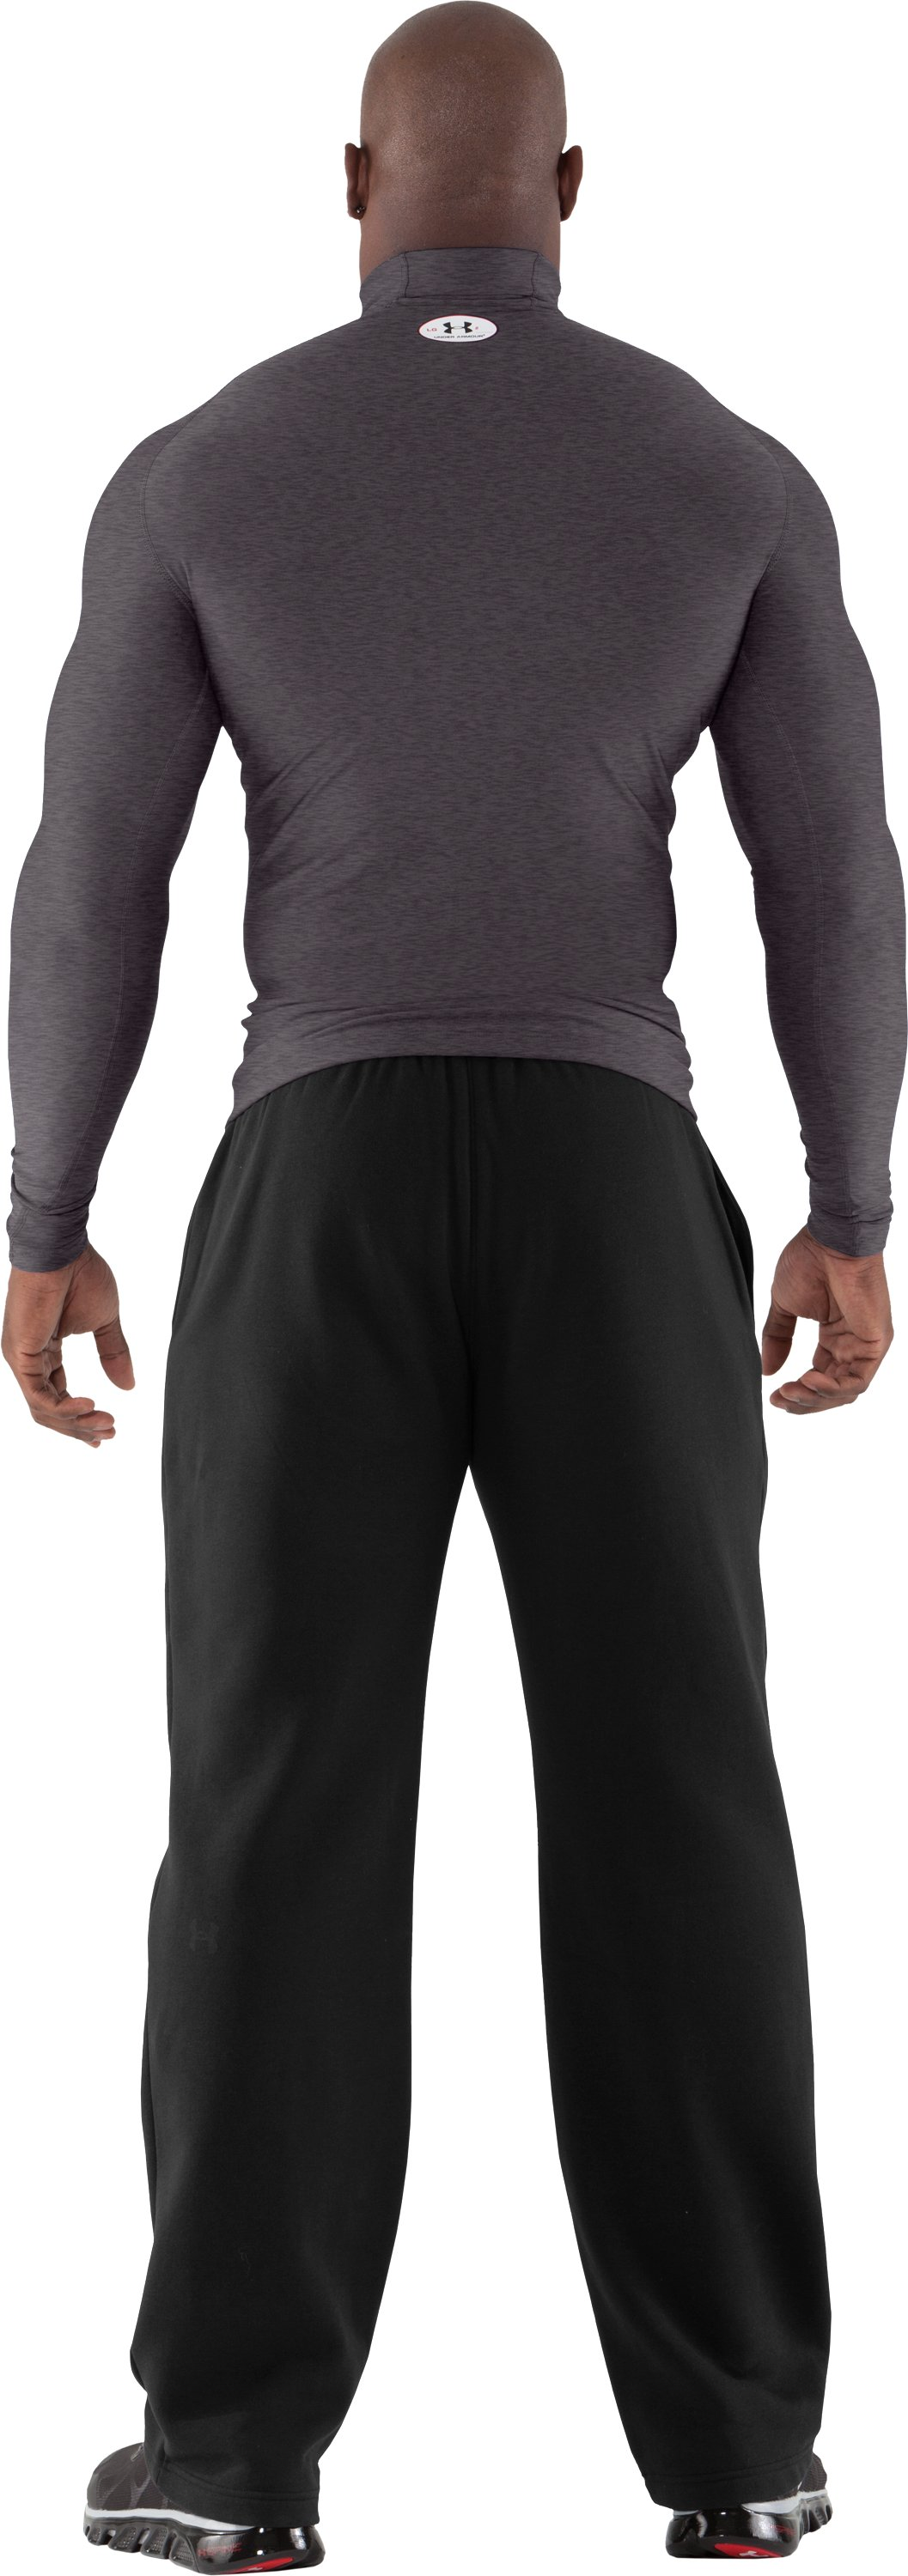 Men's ColdGear® Evo Long Sleeve Compression Mock, Carbon Heather, Back